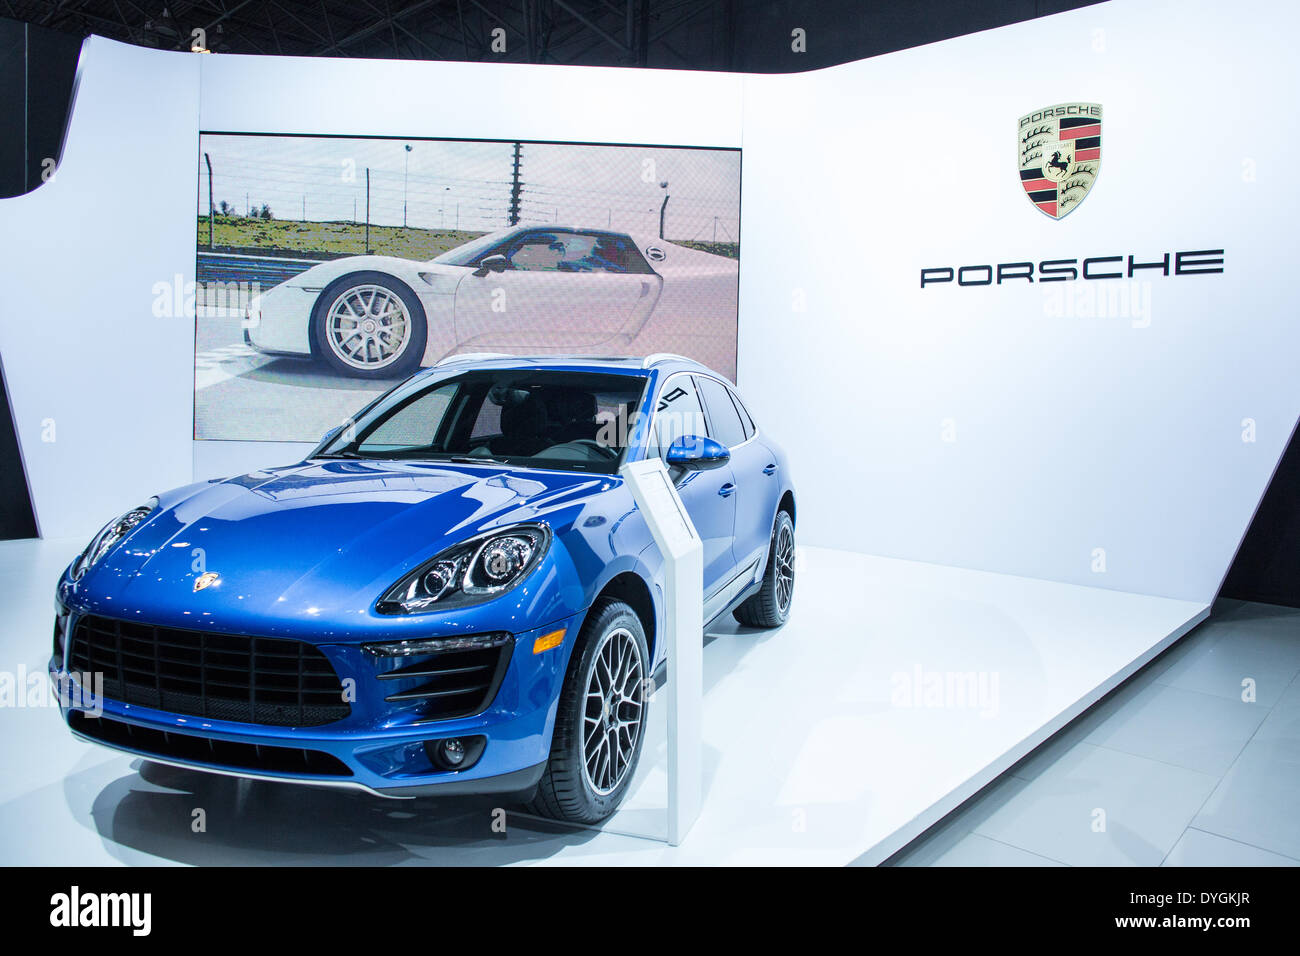 New York, USA. 16 April 2014. Porsche shows its 2015 Macan S, a 5-door, 5-seat hatchback. Porsche also brought several of its sportier models to the show. Credit:  Ed Lefkowicz/Alamy Live News - Stock Image